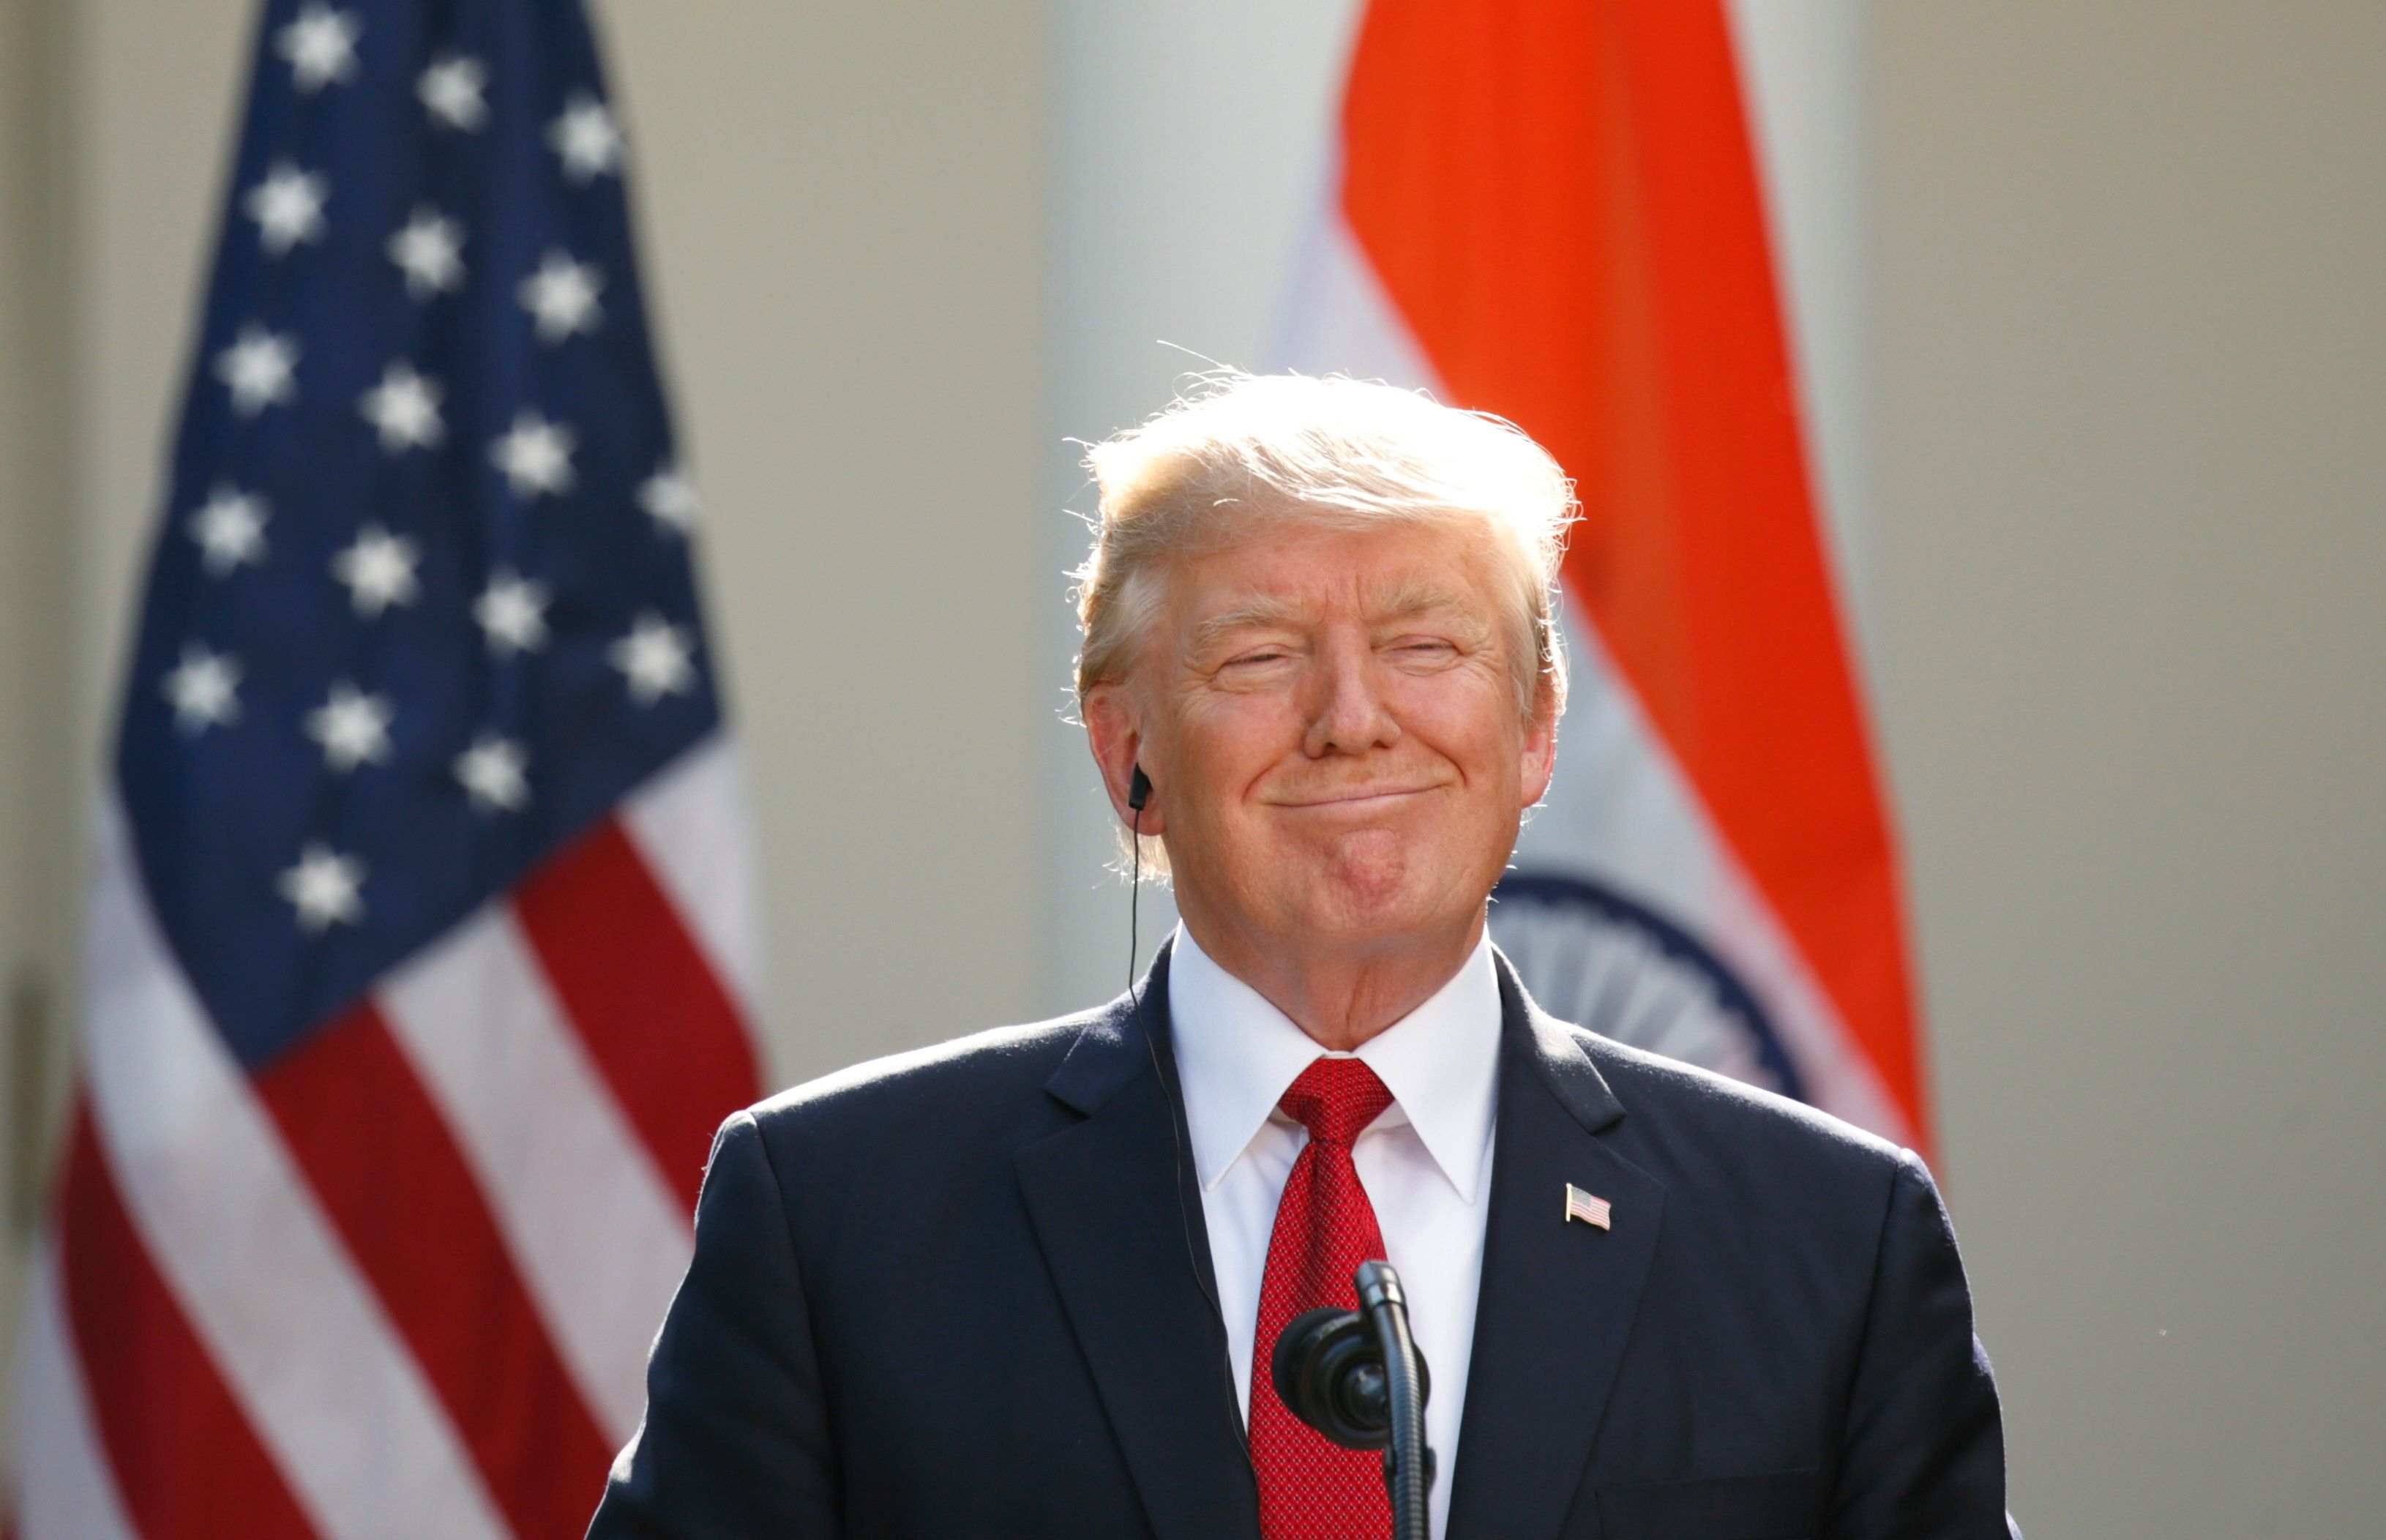 U.S. President Donald Trump smiles during a joint news conference with Indian Prime Minister Narendra Modi in the Rose Garden of the White House in Washington, U.S., June 26, 2017.